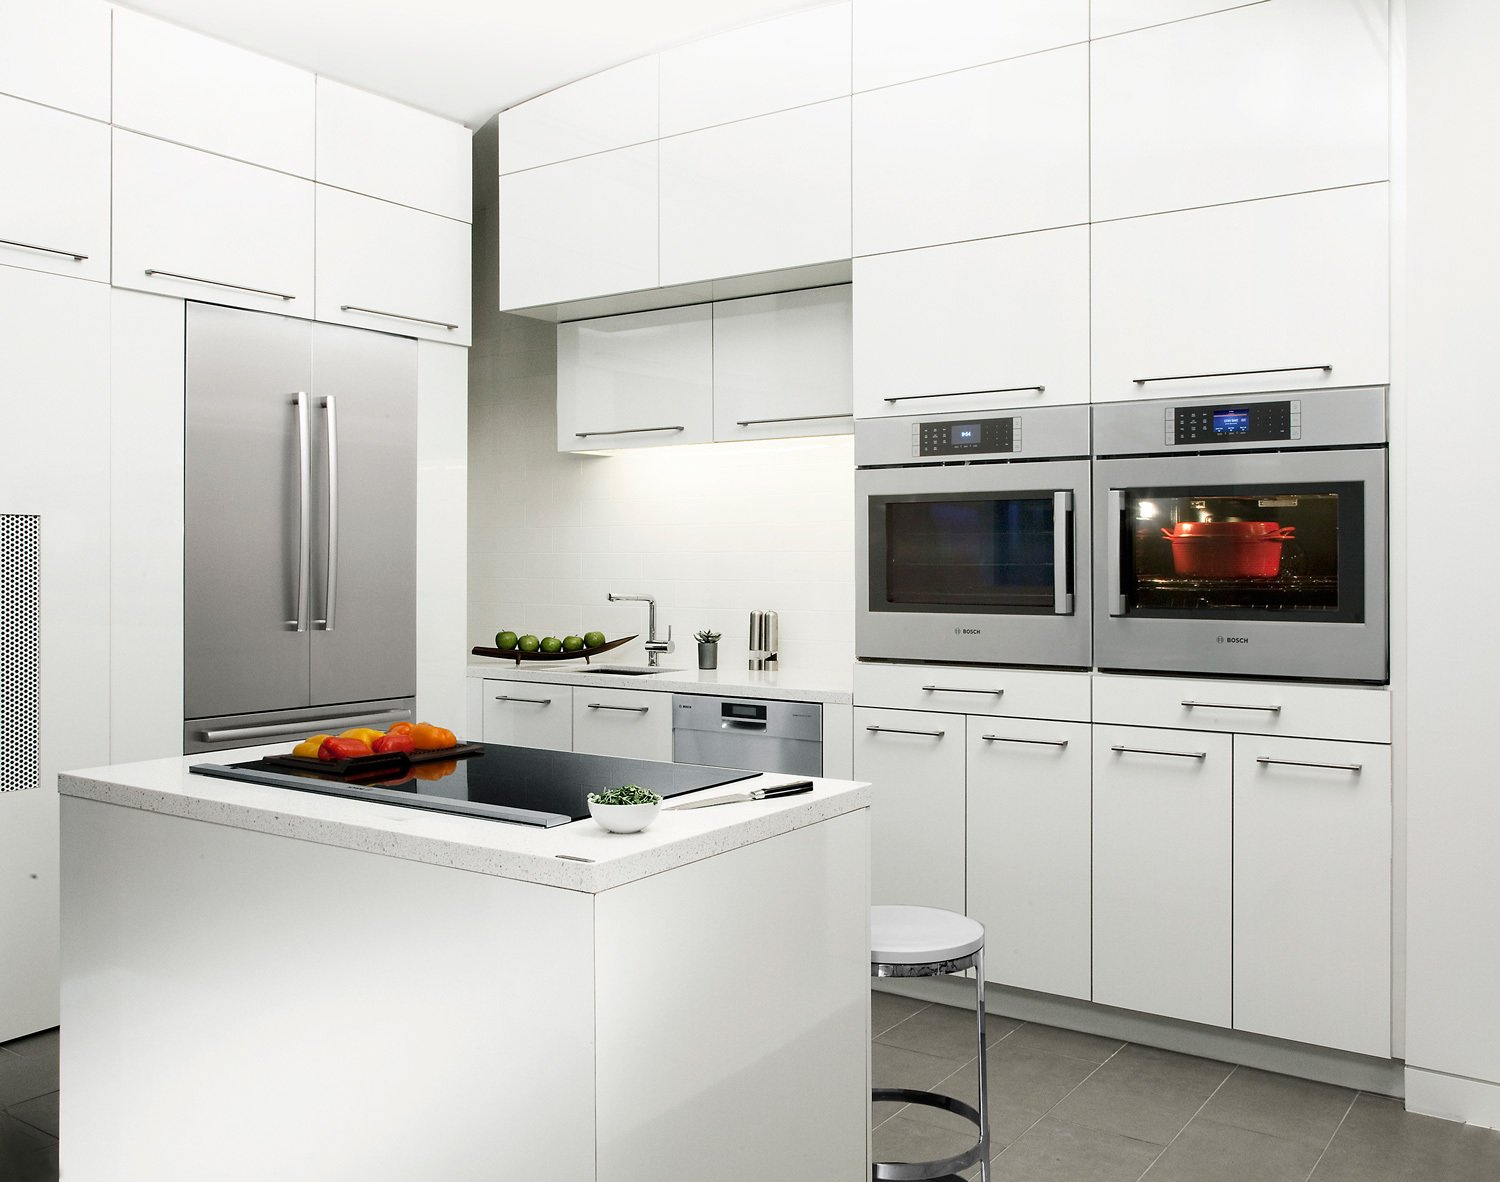 This rational European ethos motivates Bosch appliances' design down to the most minute details. For meals that require large and small pots, the FlexInduction feature on Bosch Benchmark induction cooktops combines two distinct cooking zones into one contiguous area, providing total fluidity of movement.  Photo 7 of 8 in Bosch Brings Refined European Design to the Kitchen